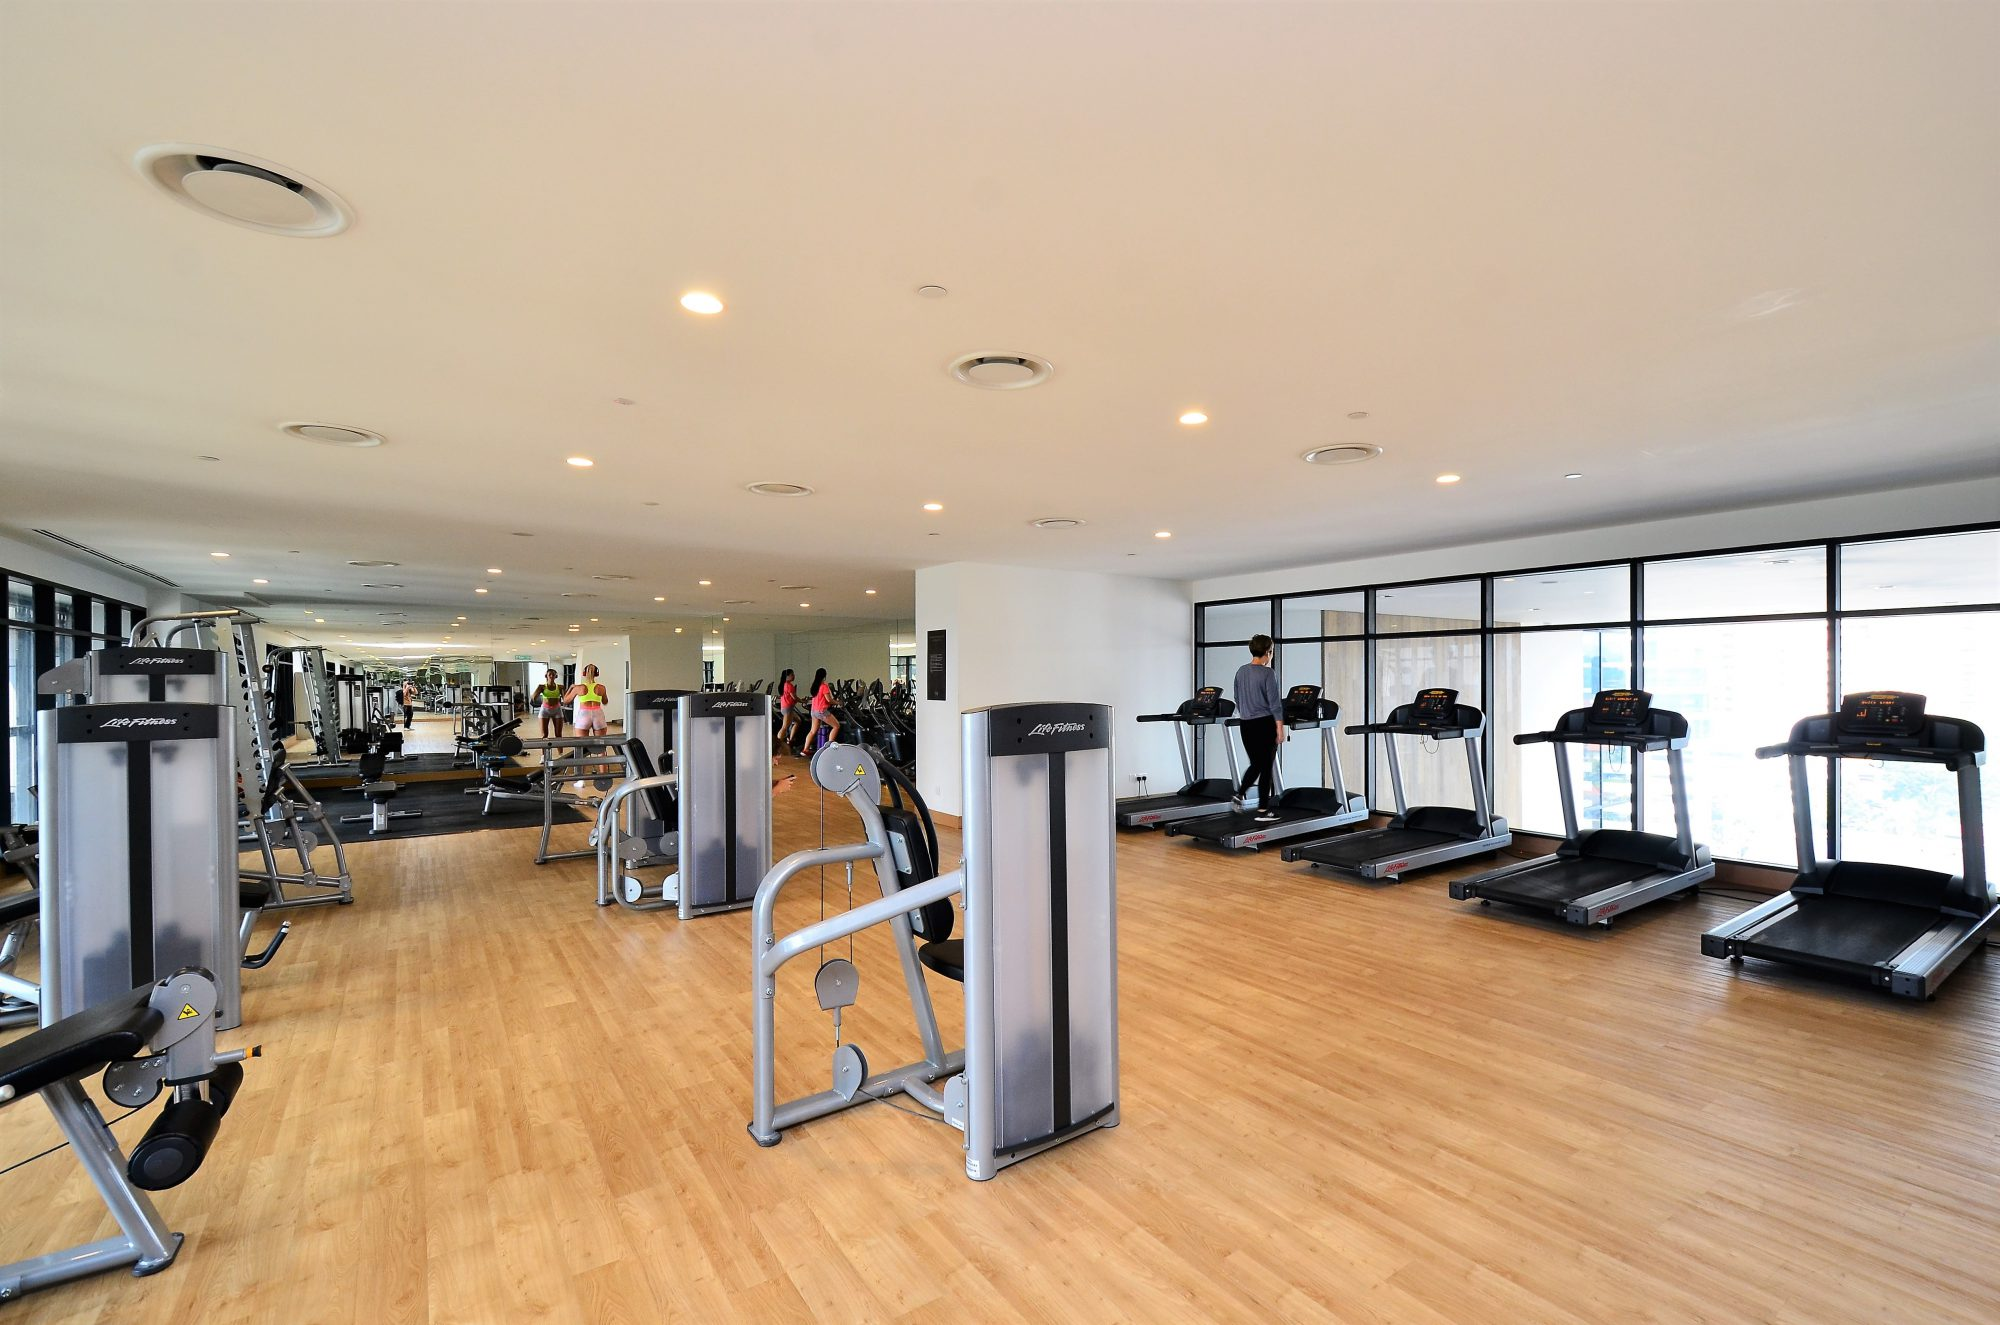 Fitness Center & Gym Insurance: A Beginner's Guide